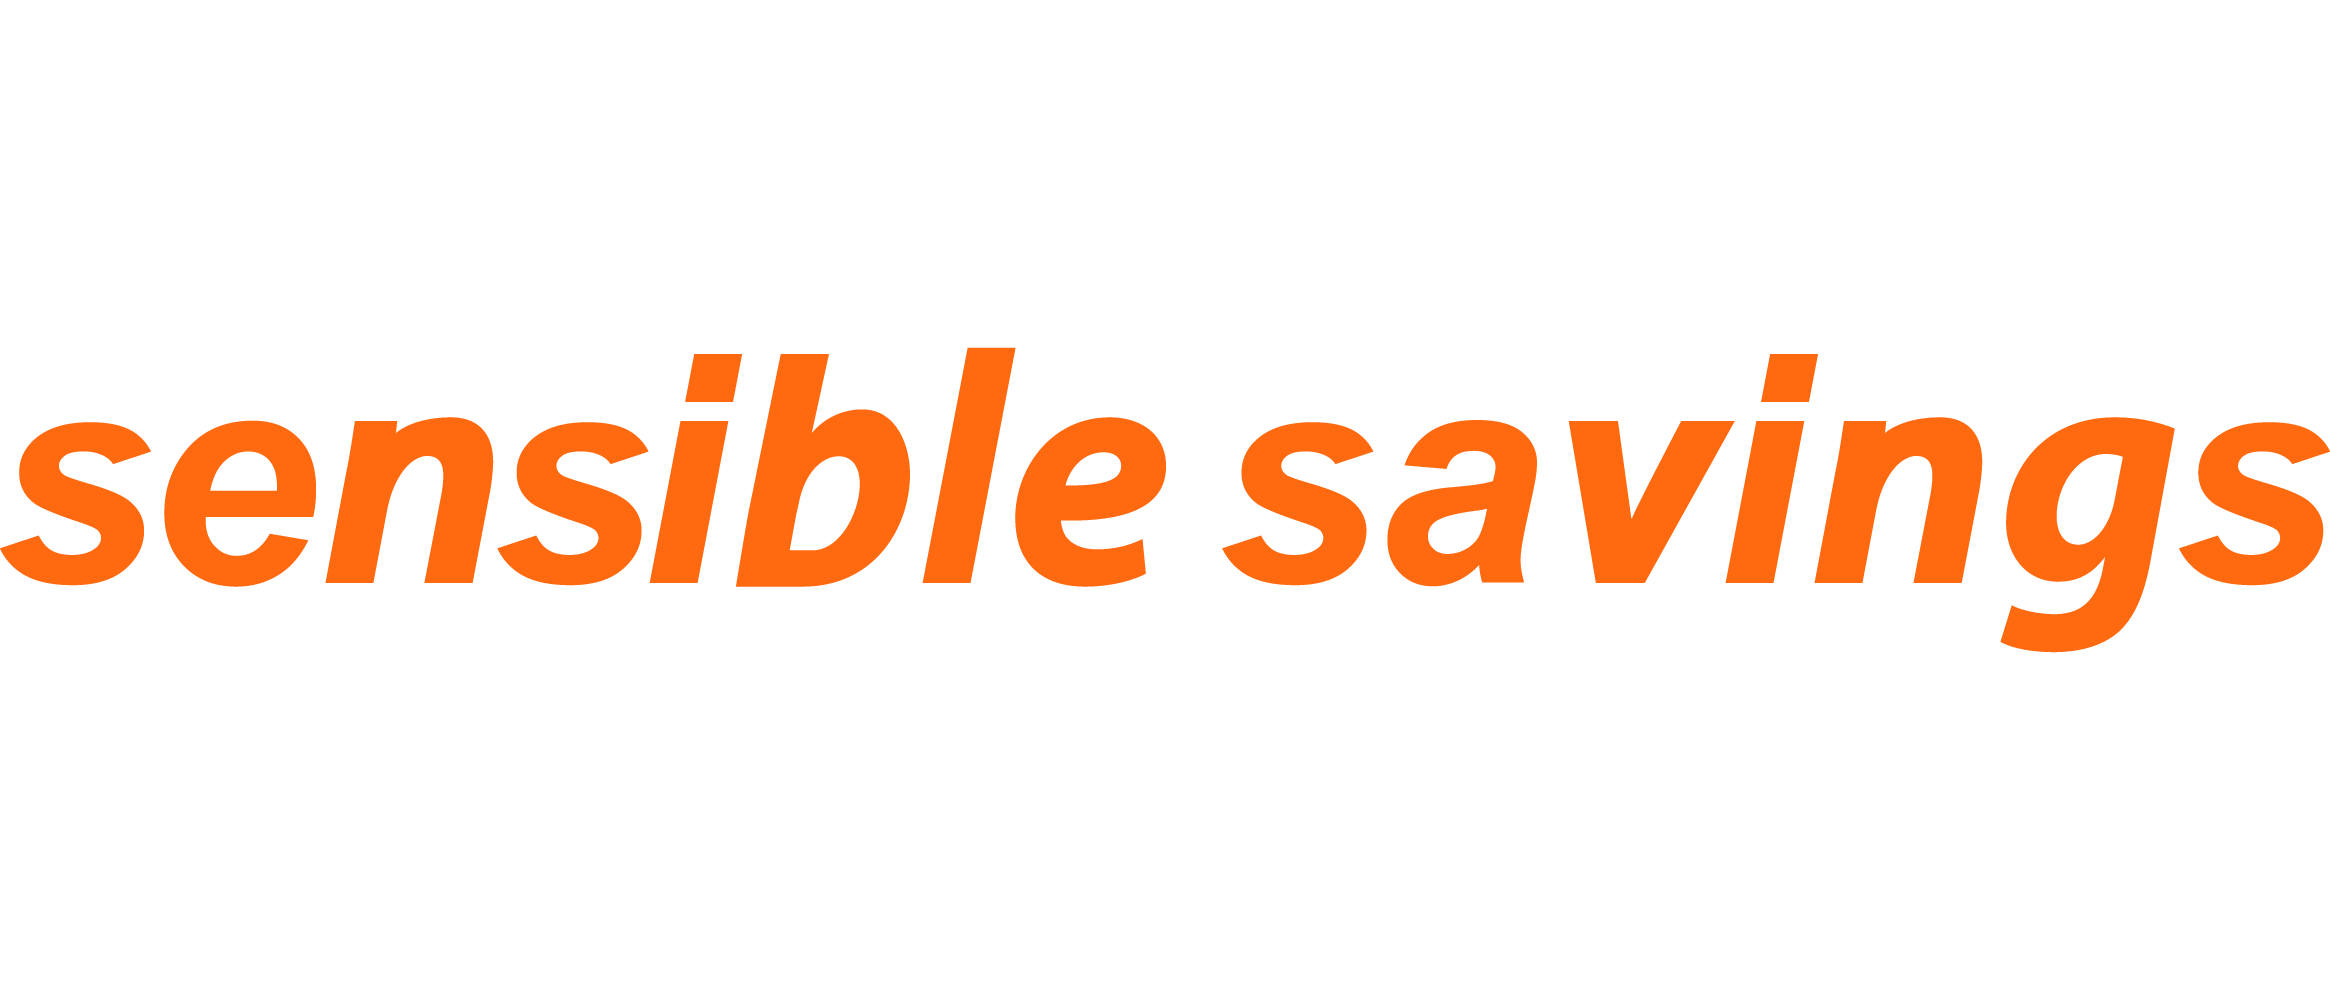 Sensiblesavings.co.uk